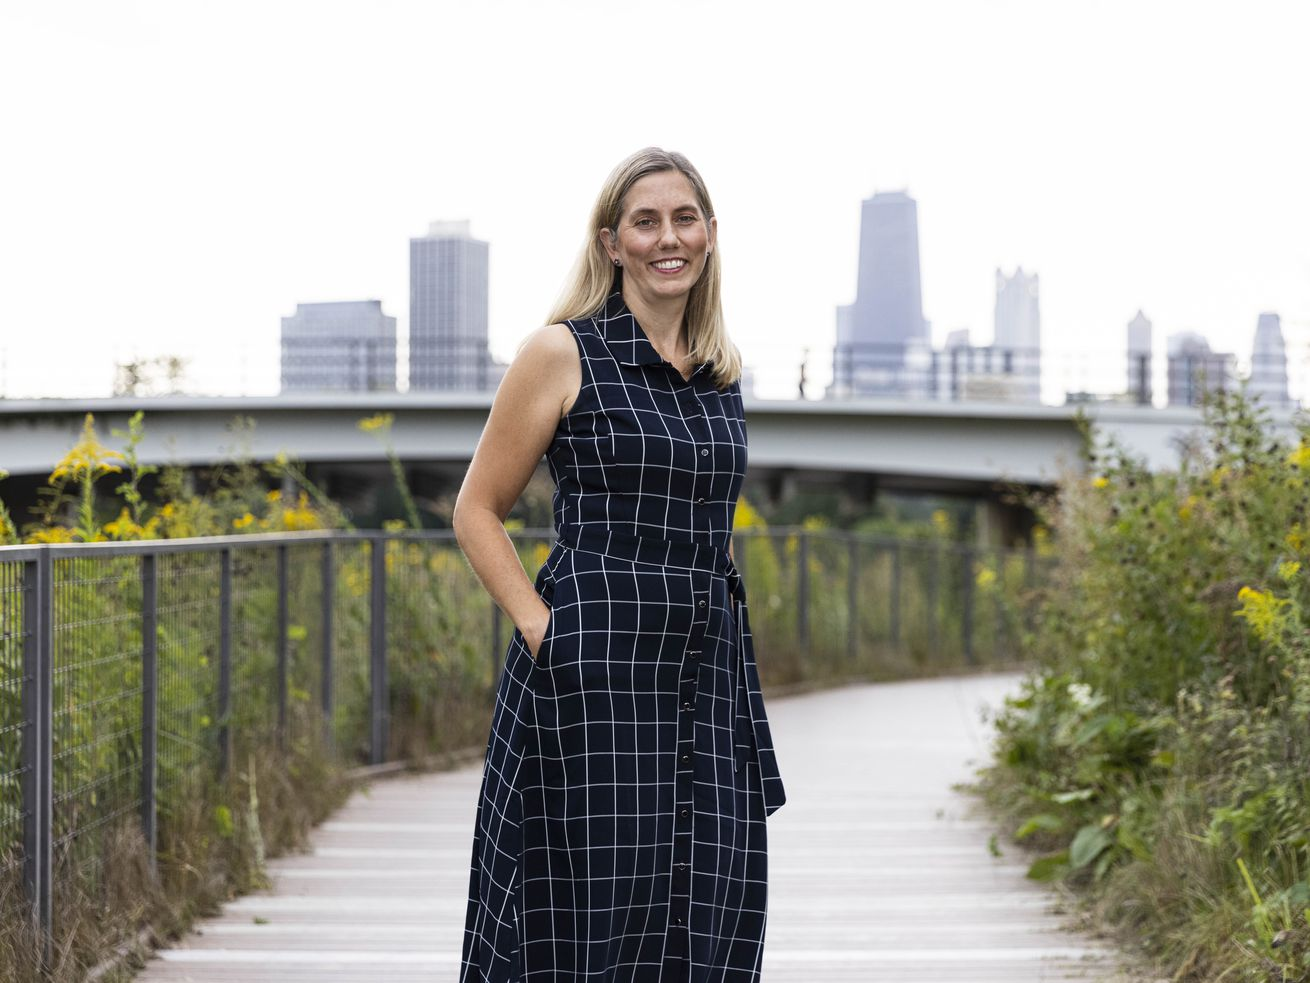 New Lincoln Park Zoo president and CEO Megan Ross poses for portrait at Lincoln Park, Tuesday, Sept. 7, 2021. | Anthony Vazquez/Sun-Times